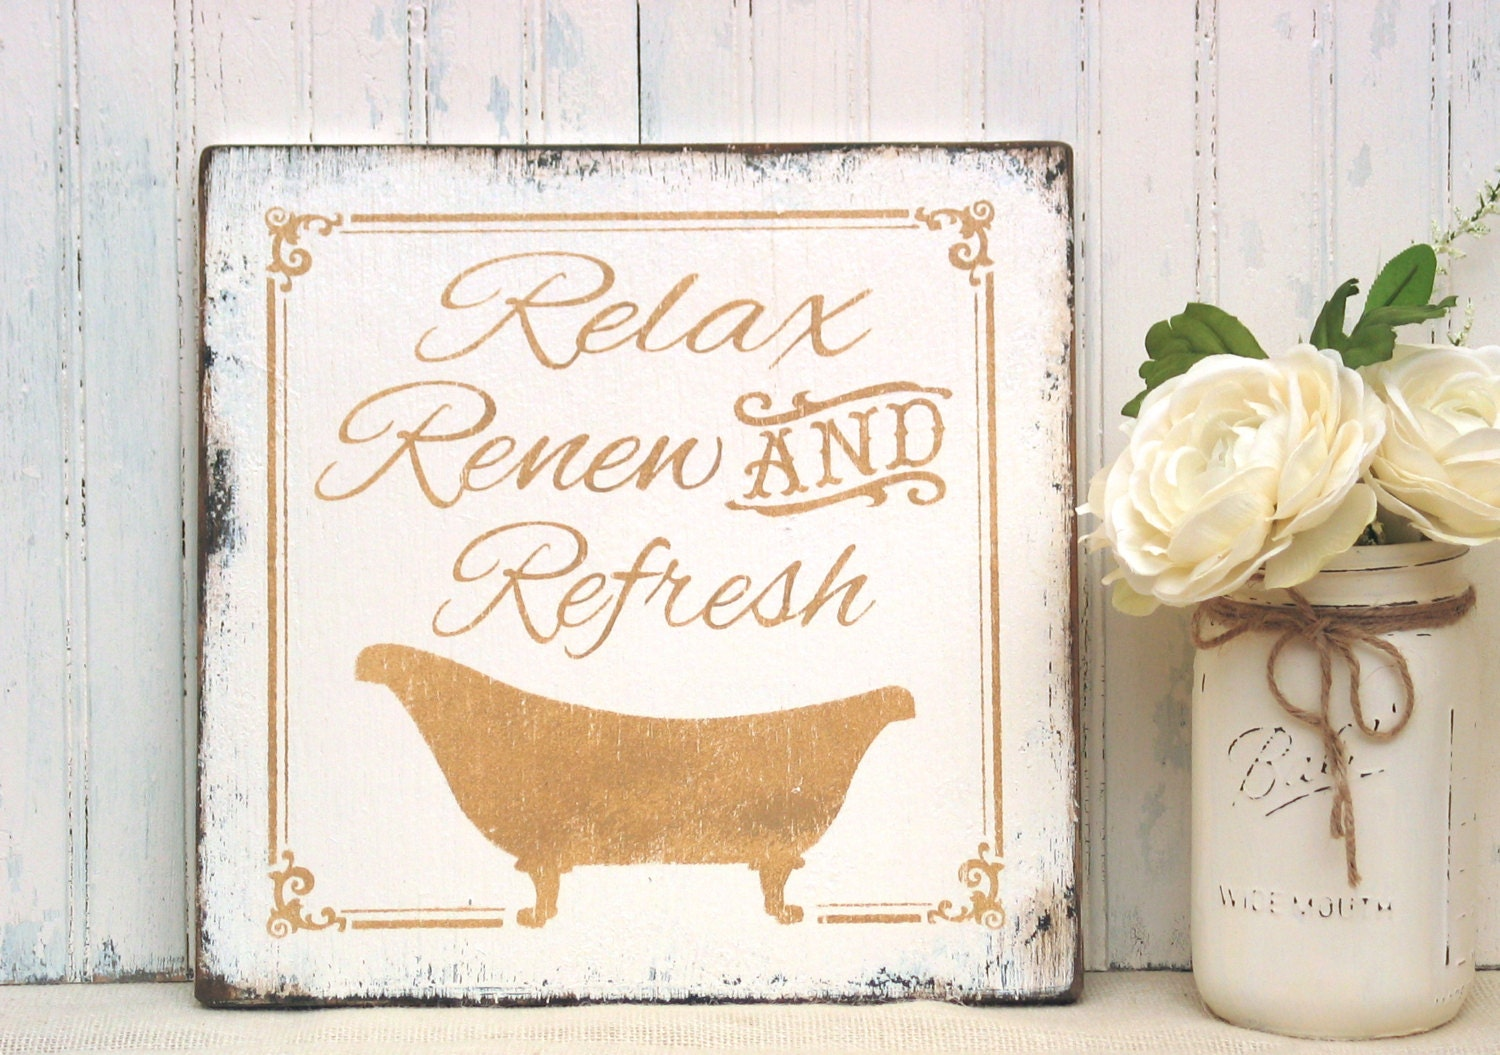 Relax Renew Refresh Bathroom Sign Rustic Cottage Bath Sign